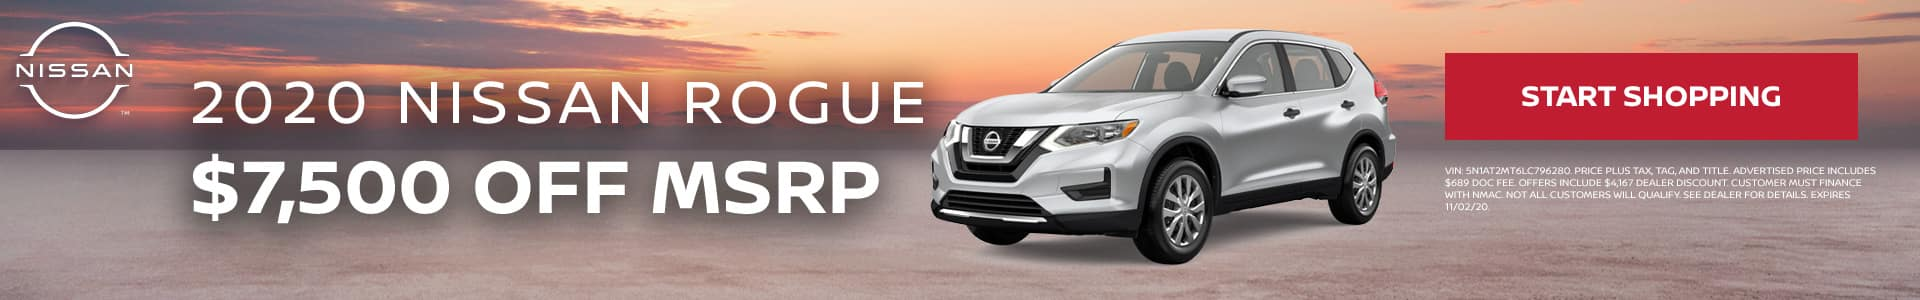 2020 Nissan Rogue - $7,500 off MSRP